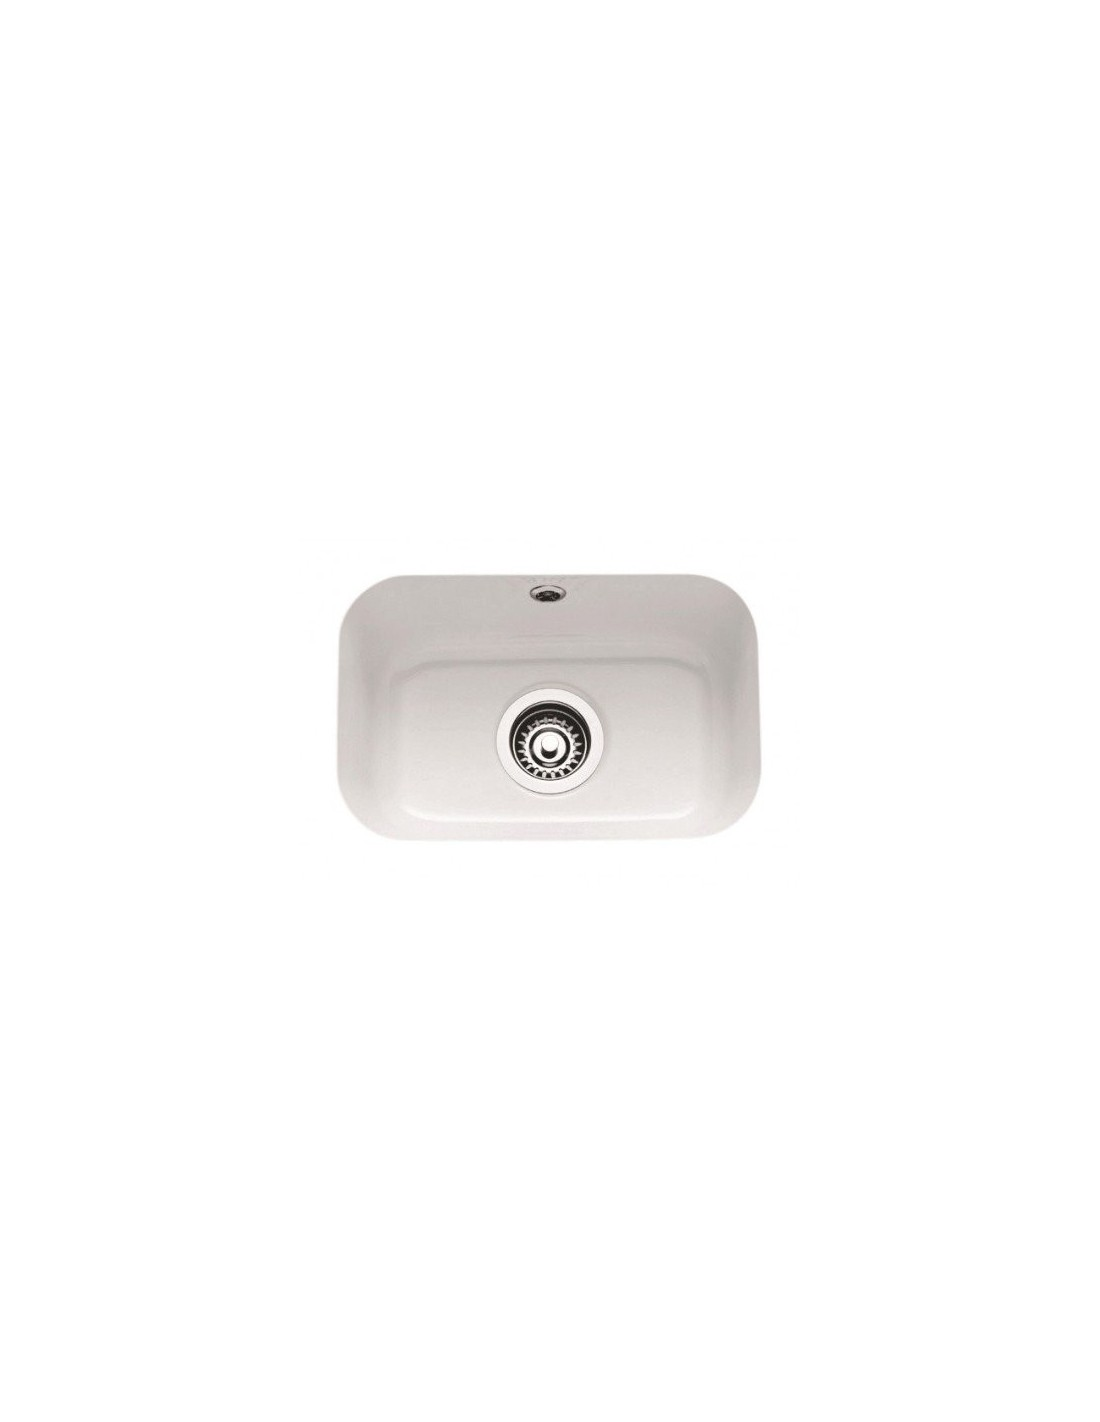 Kohler single bowl kitchen sink undermount 19940w 300 x - Undermount ceramic kitchen sink ...